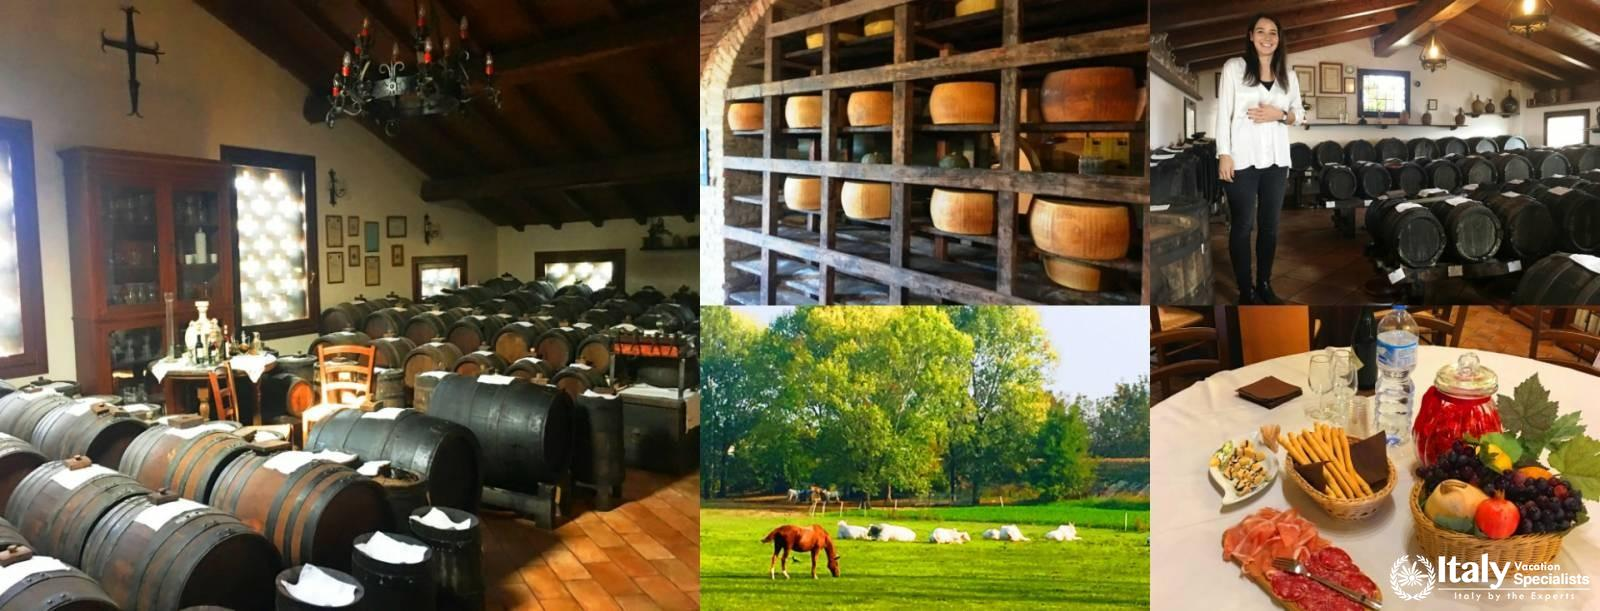 A Day in Emilia Romagna with Local Tastings and Cooking Course